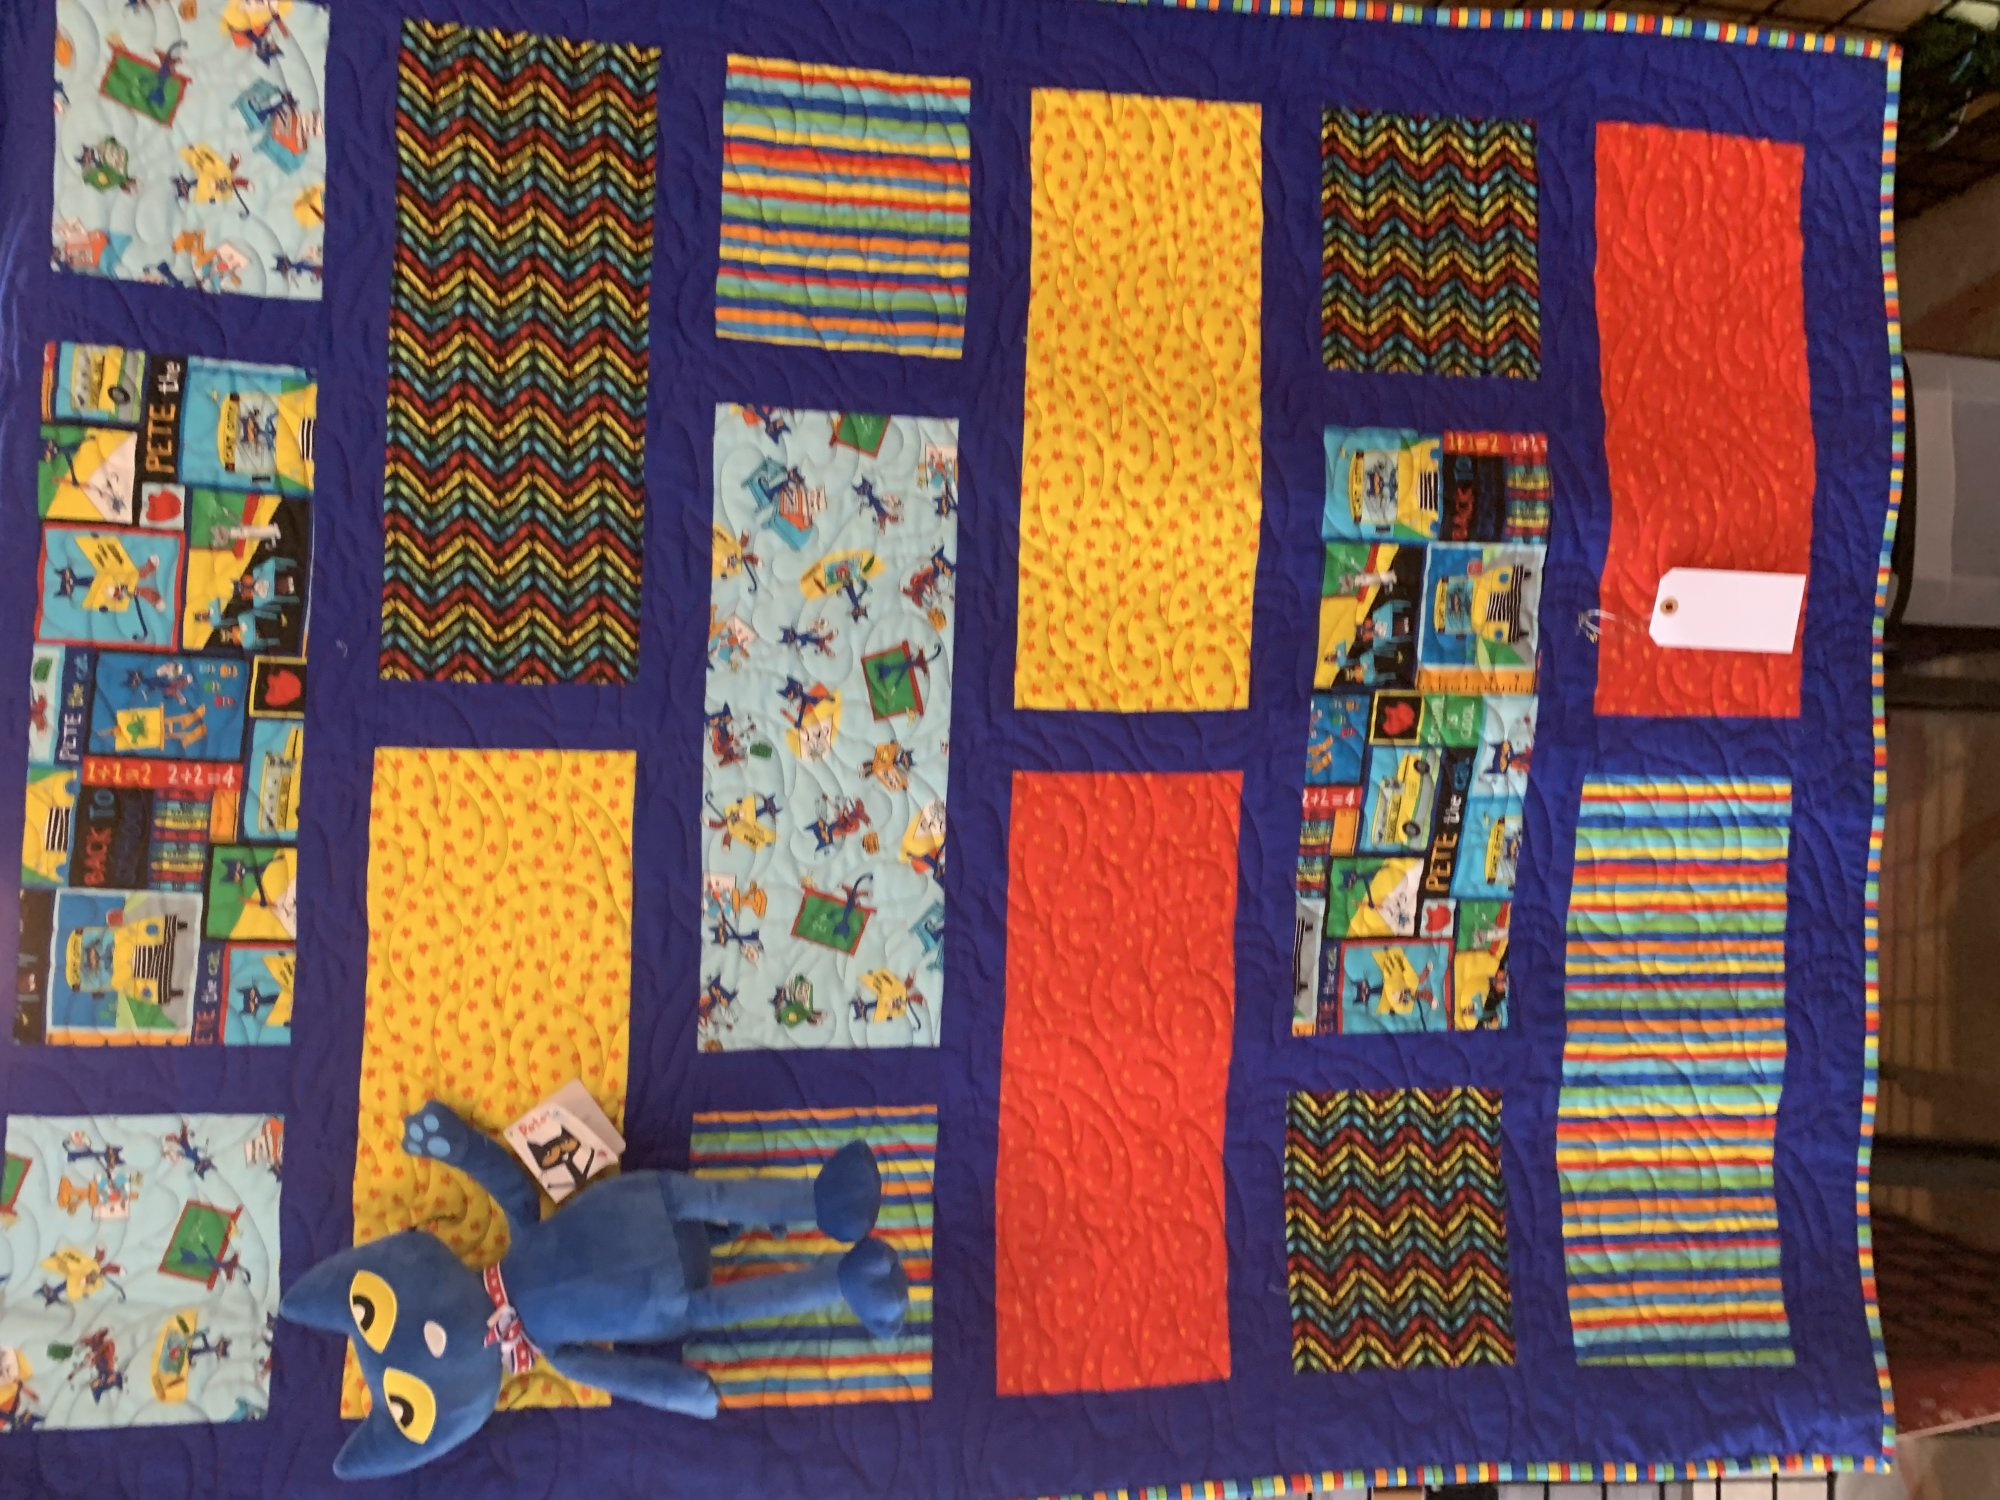 Pete the Cat Quilt and Pete